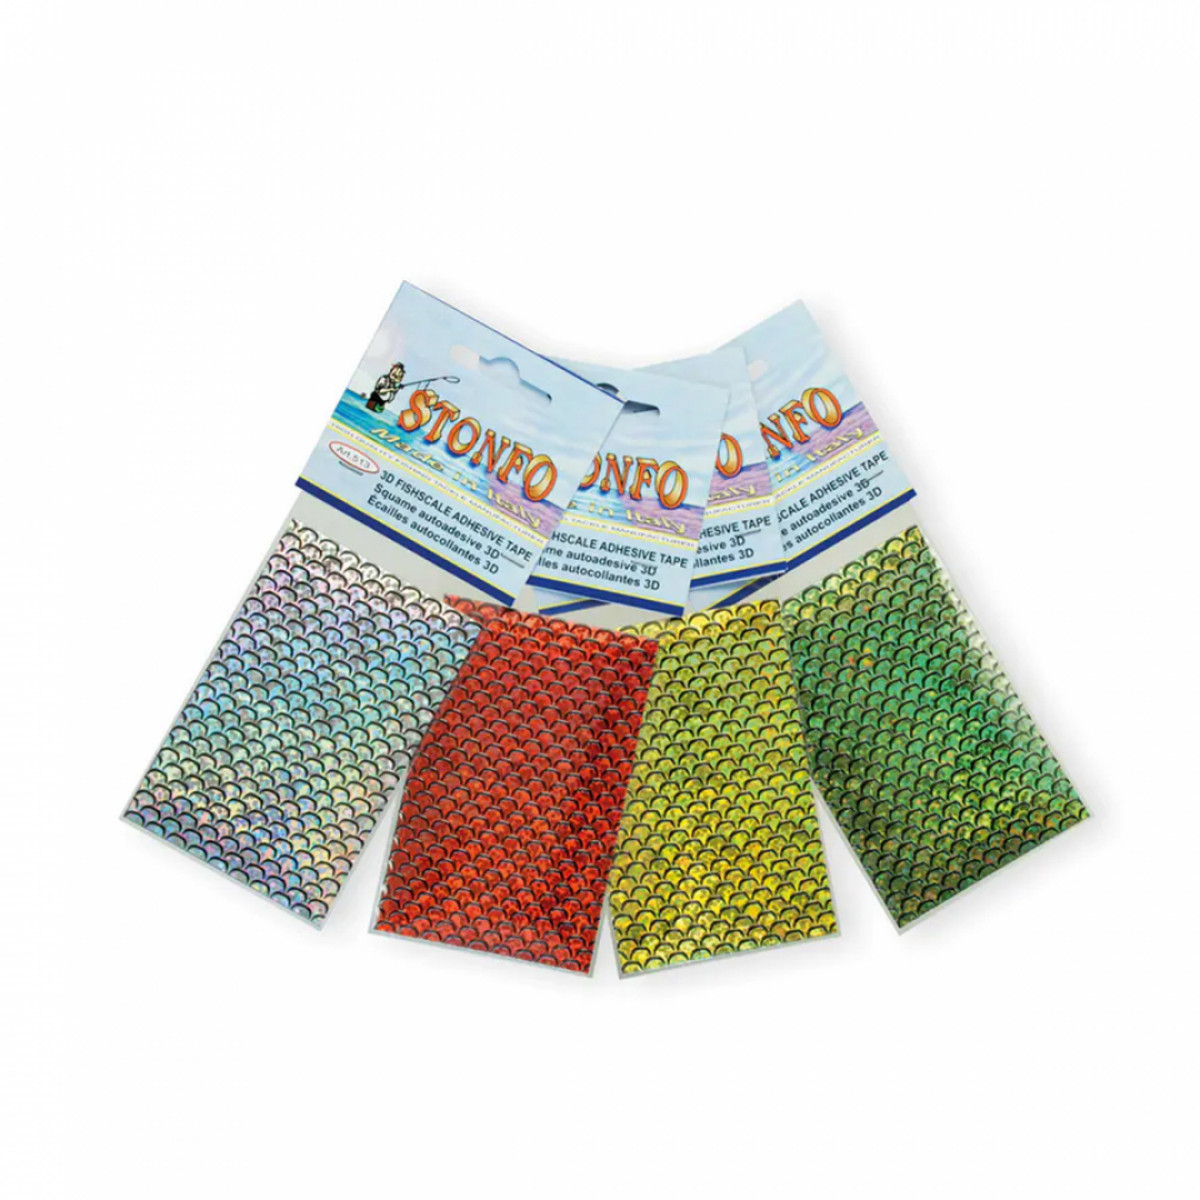 3D Fishscale Adhesive Tape